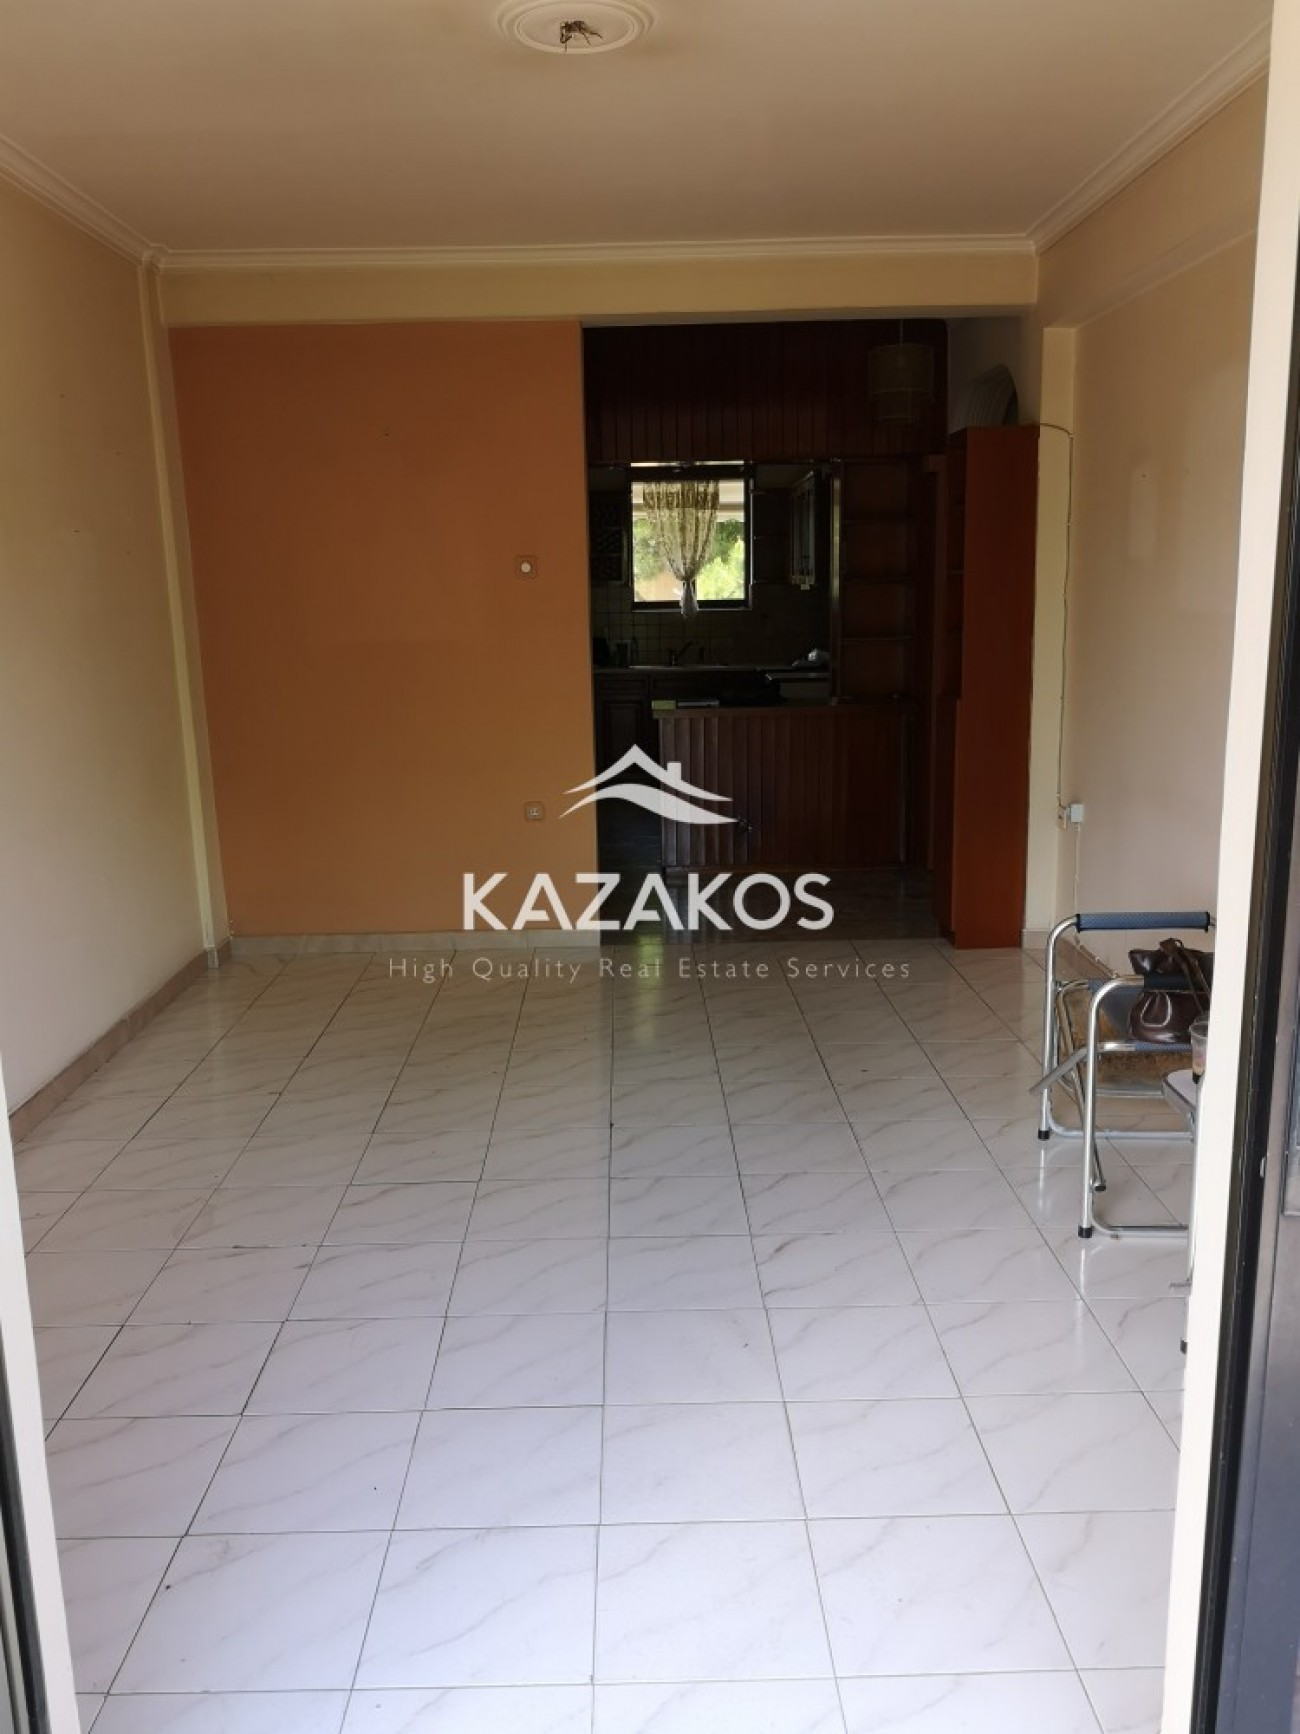 Apartment for Sale in Peyki, North & East Region of Athens, Greece